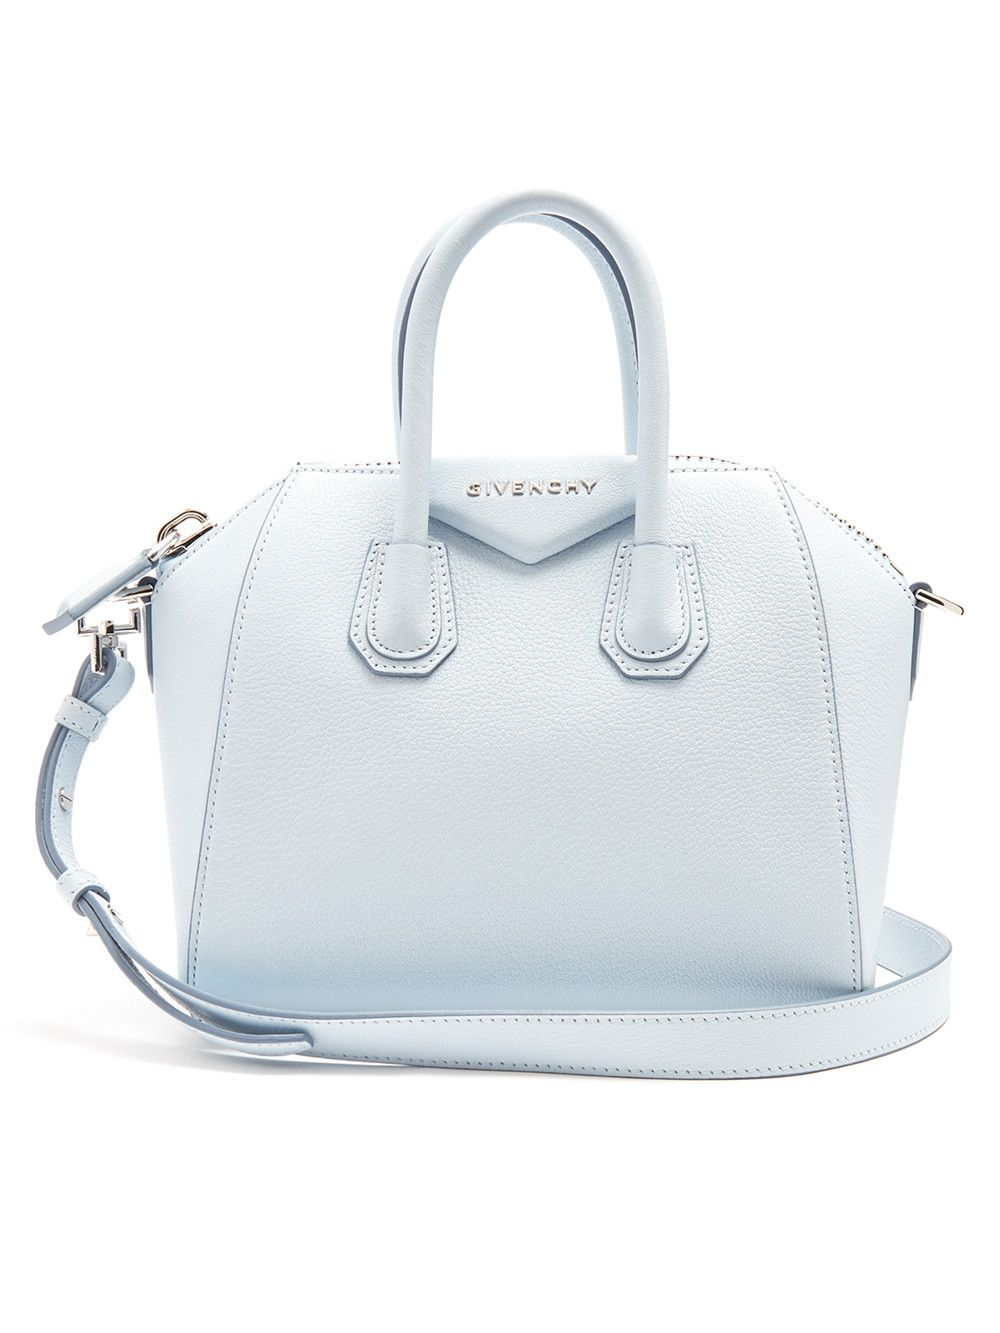 GIVENCHY Antigona Small Bag.  givenchy  bags  shoulder bags  hand bags   leather  tote   a519db565a4b2